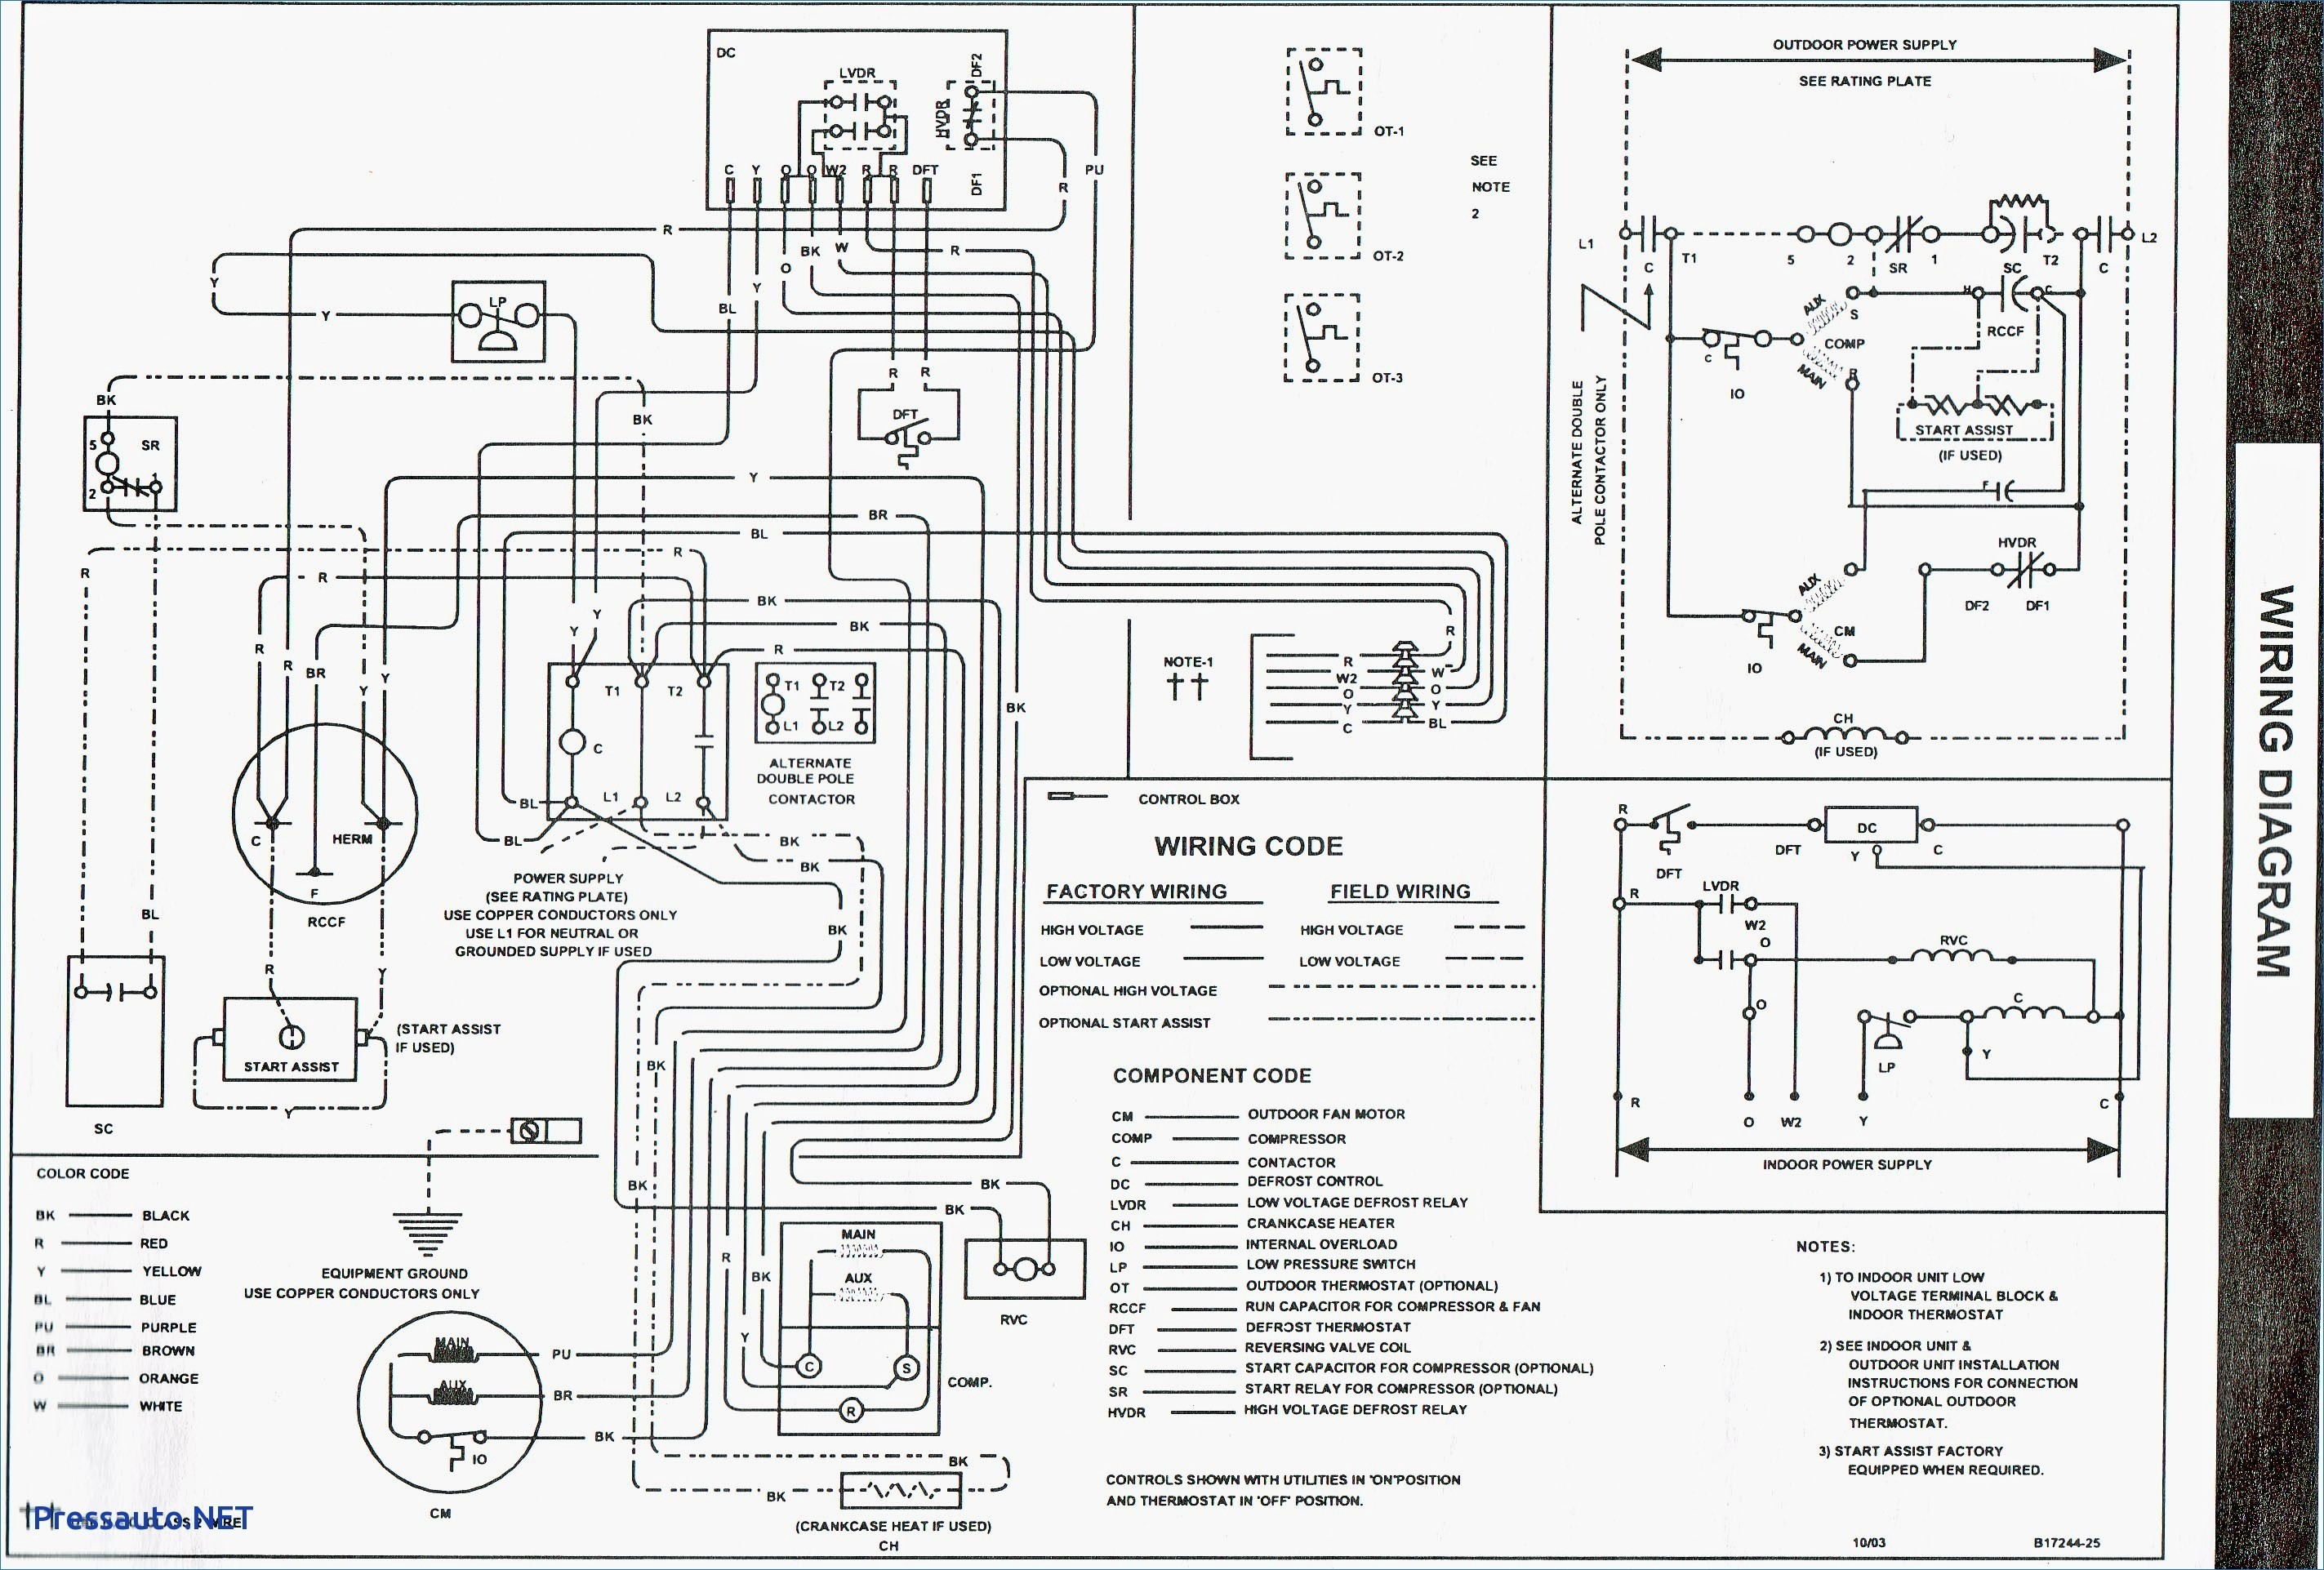 Goodman Heat Pump Wiring Diagram Goodman Air Handler Wiring Diagram Best Wiring York Diagram Of Goodman Heat Pump Wiring Diagram Goodman Air Handler Wiring Diagram New Electric Heat Wiring Diagram